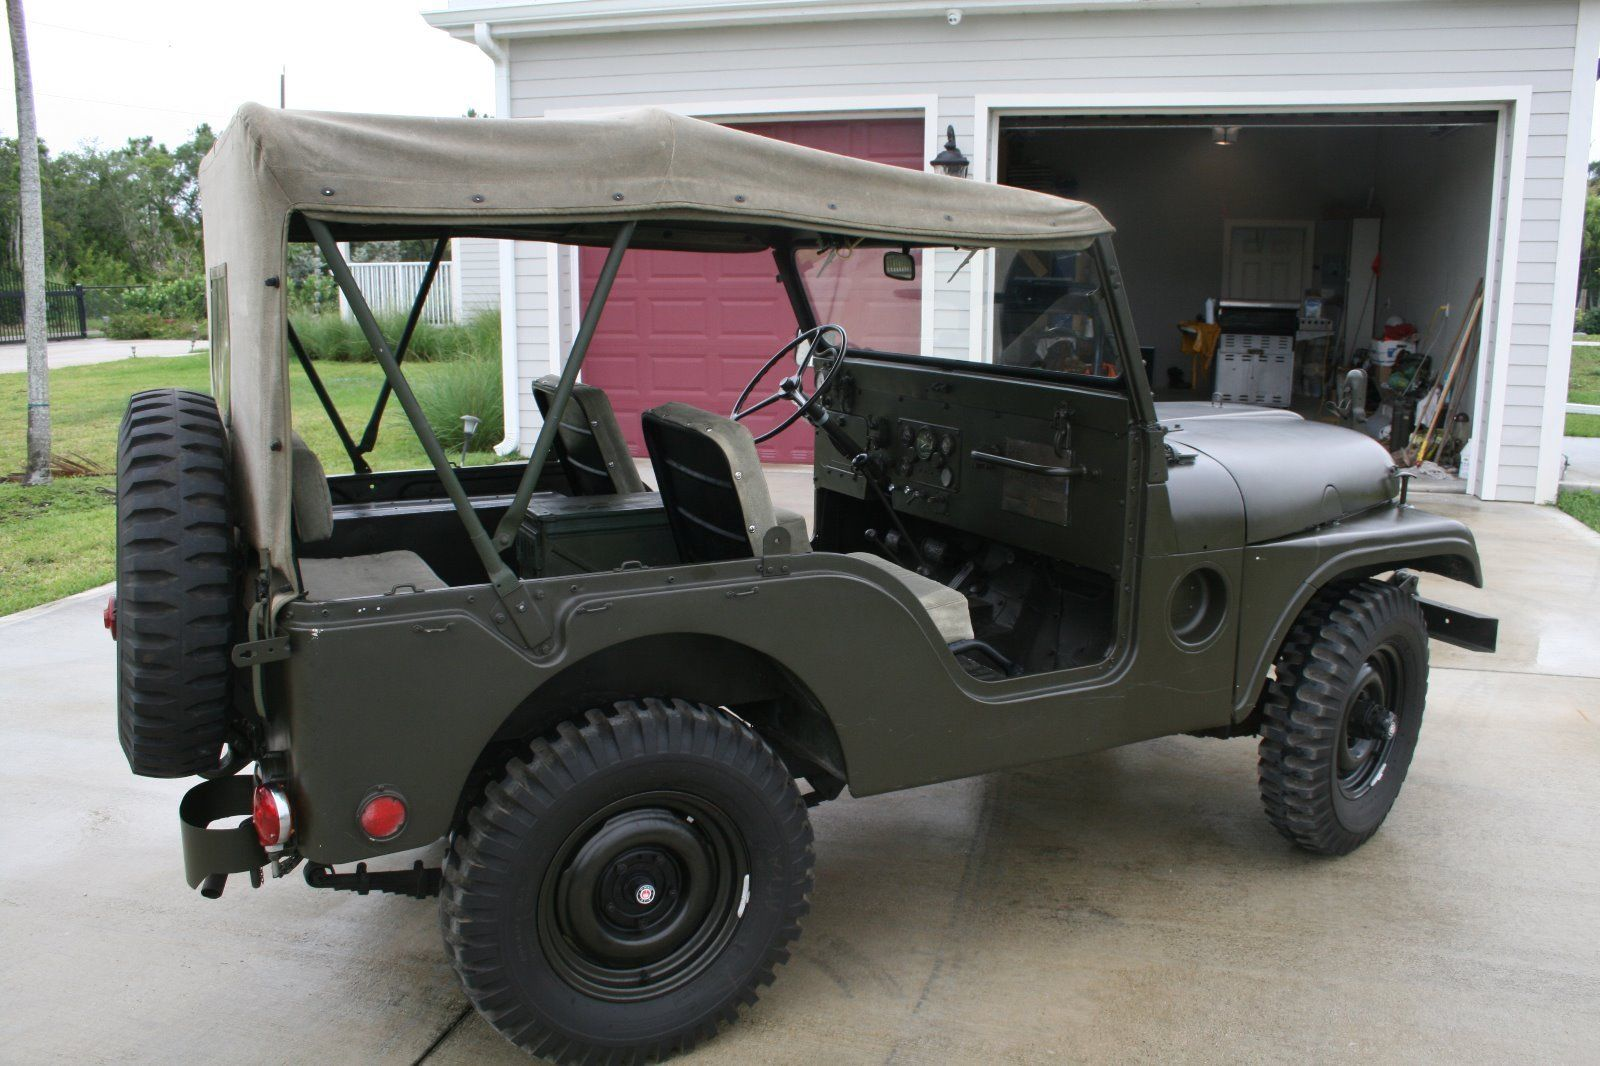 movie car 1953 Willys Jeep M38A1 military